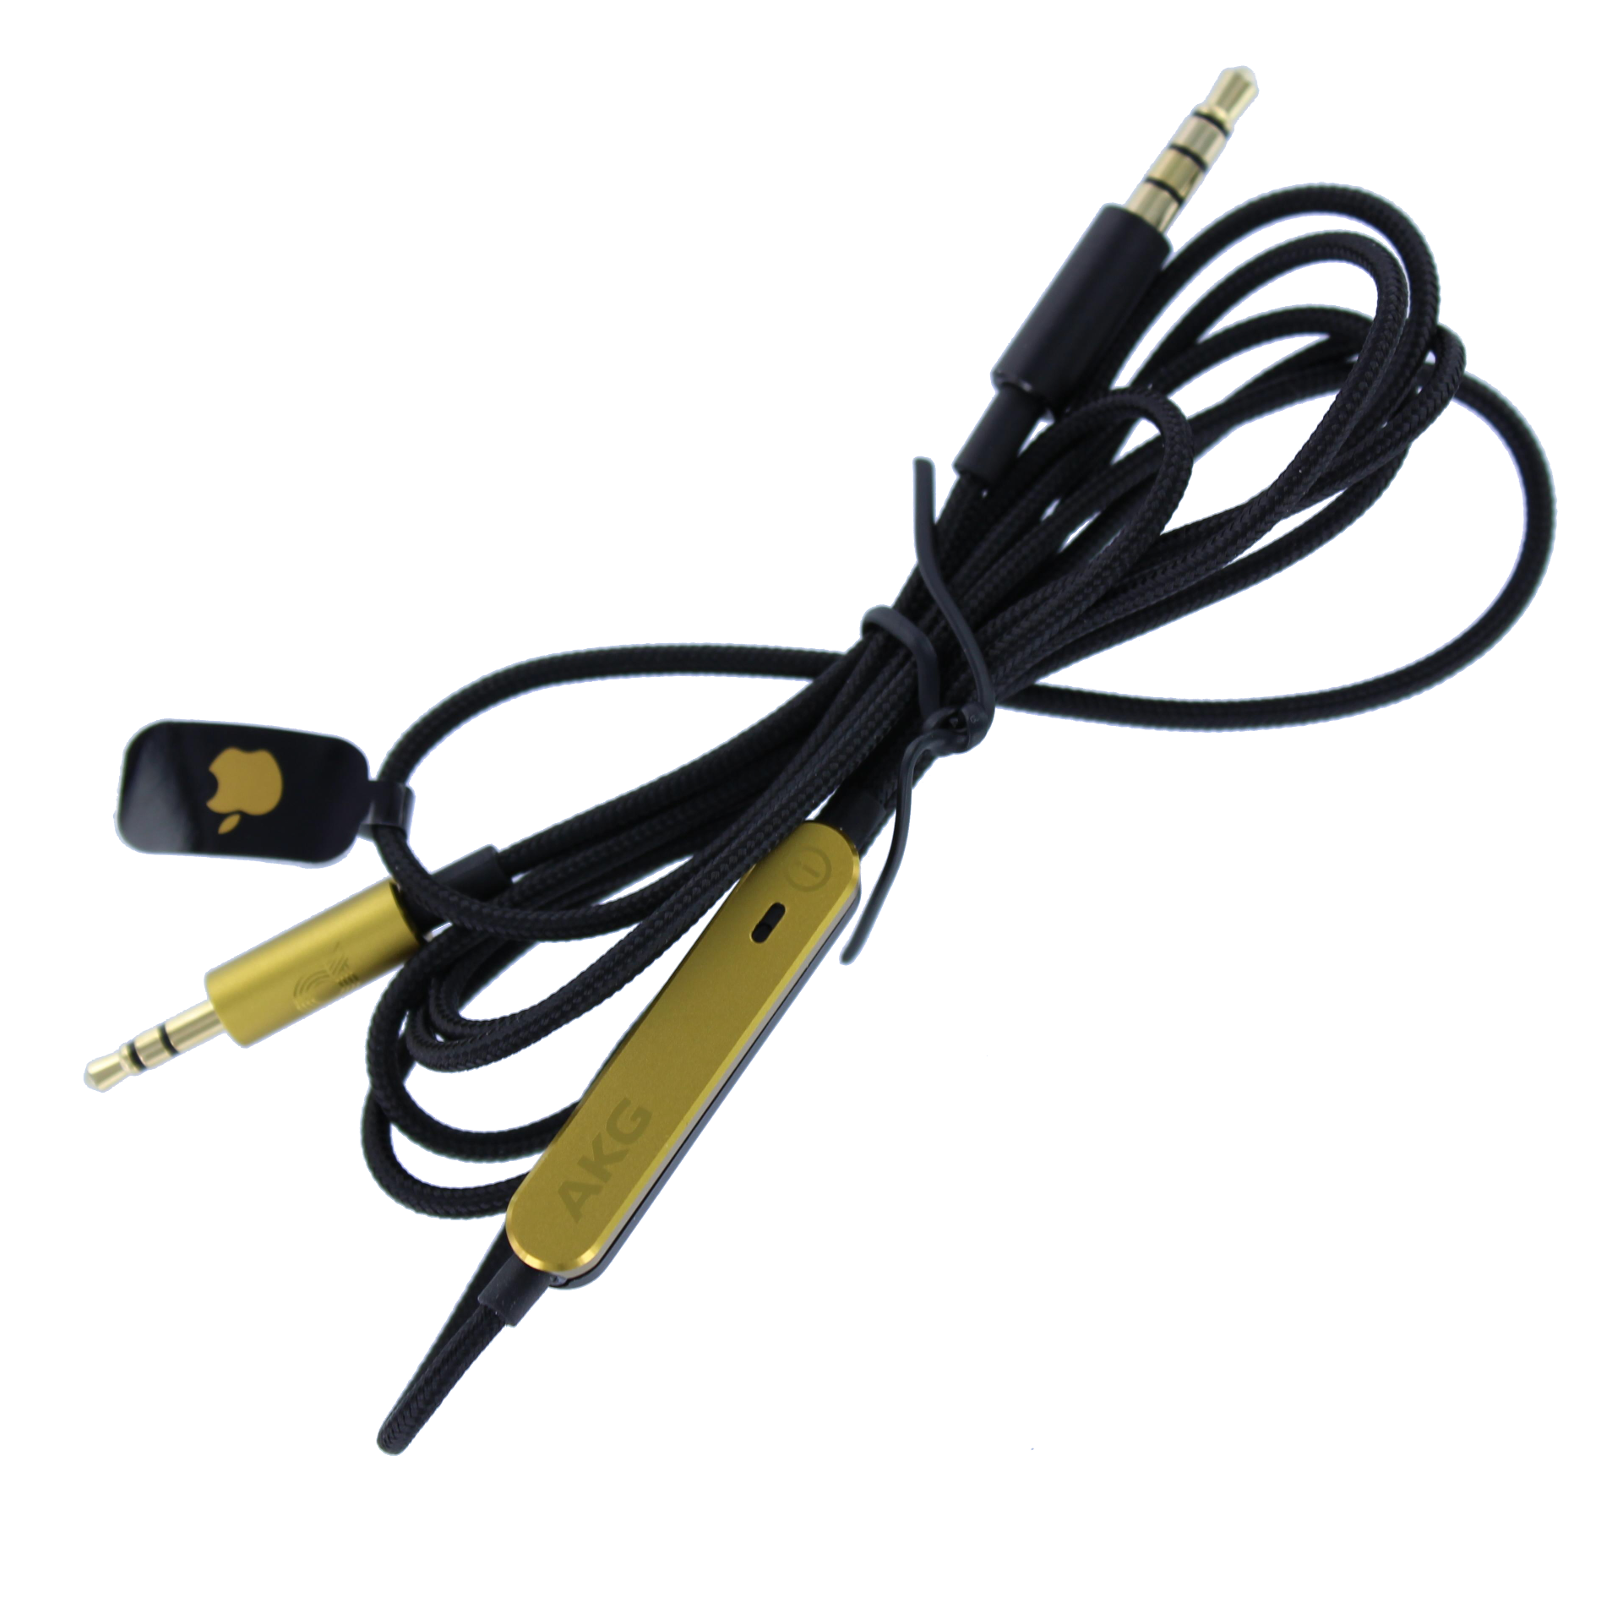 Cable with remote, 120cm, IOS, AKG N90 - Black - Audio cable 120 cm - Hero